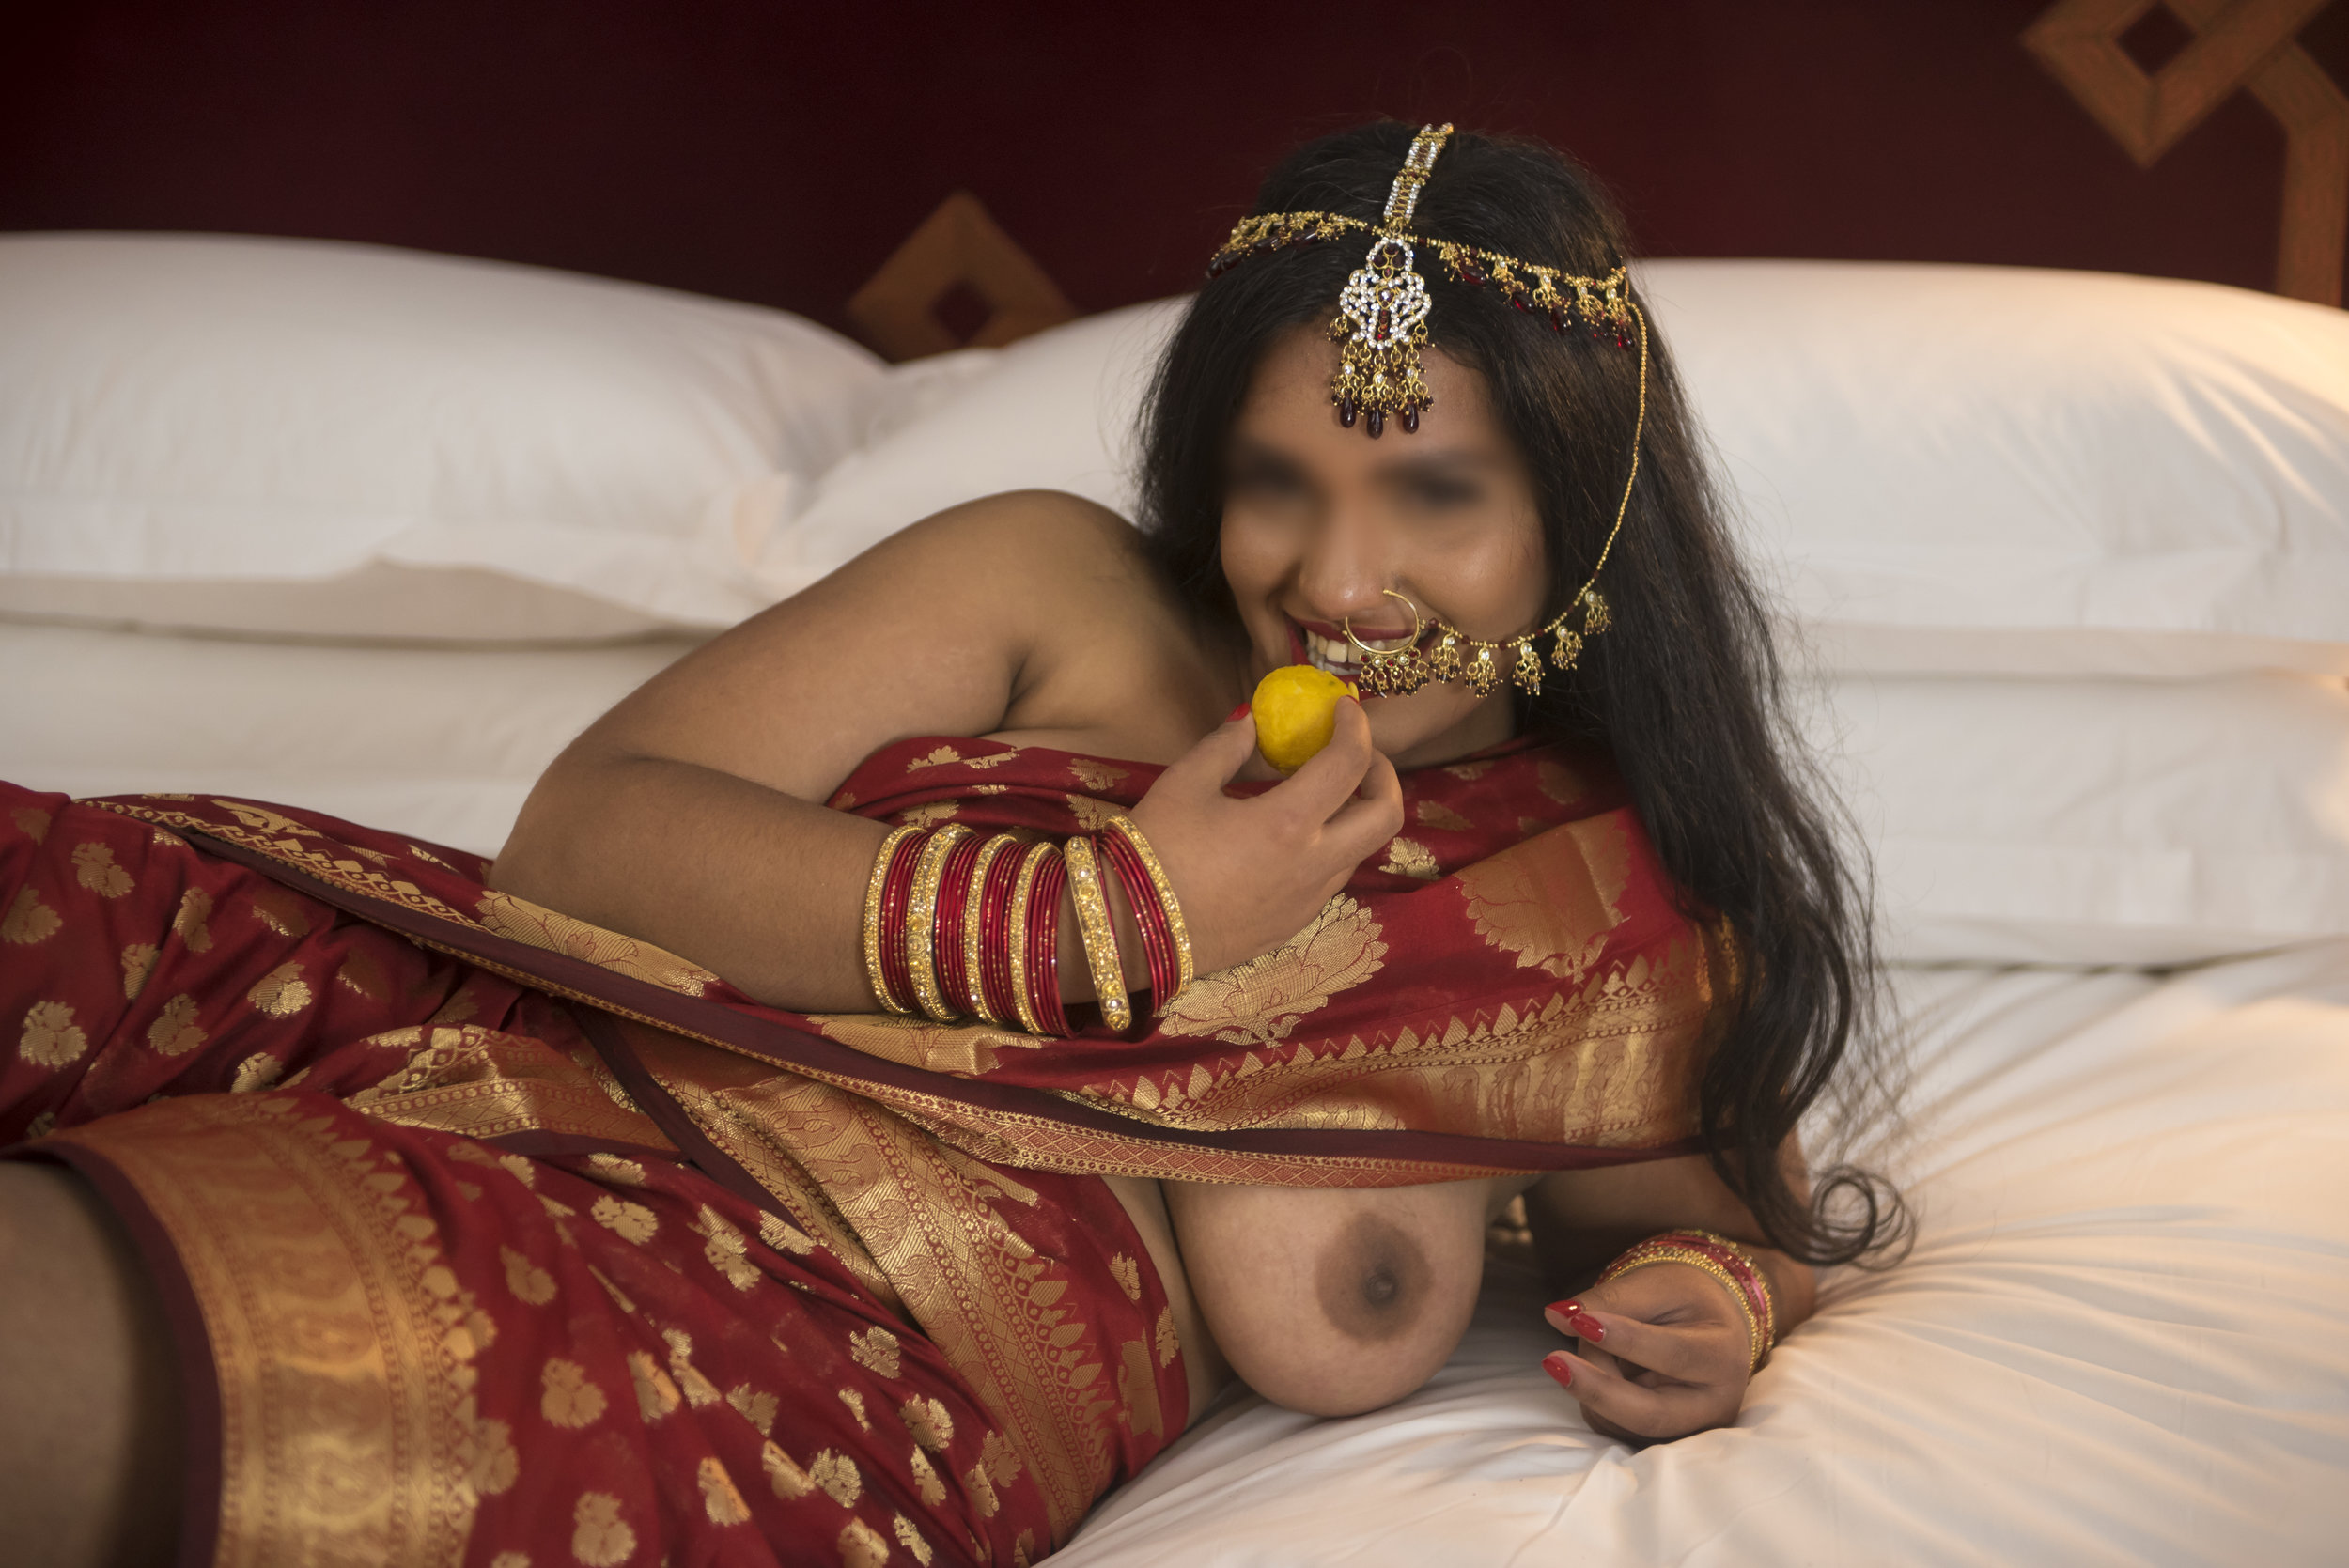 East Indian Kinky Escort and Dominatrix USA and NYC Jasmine Praveena